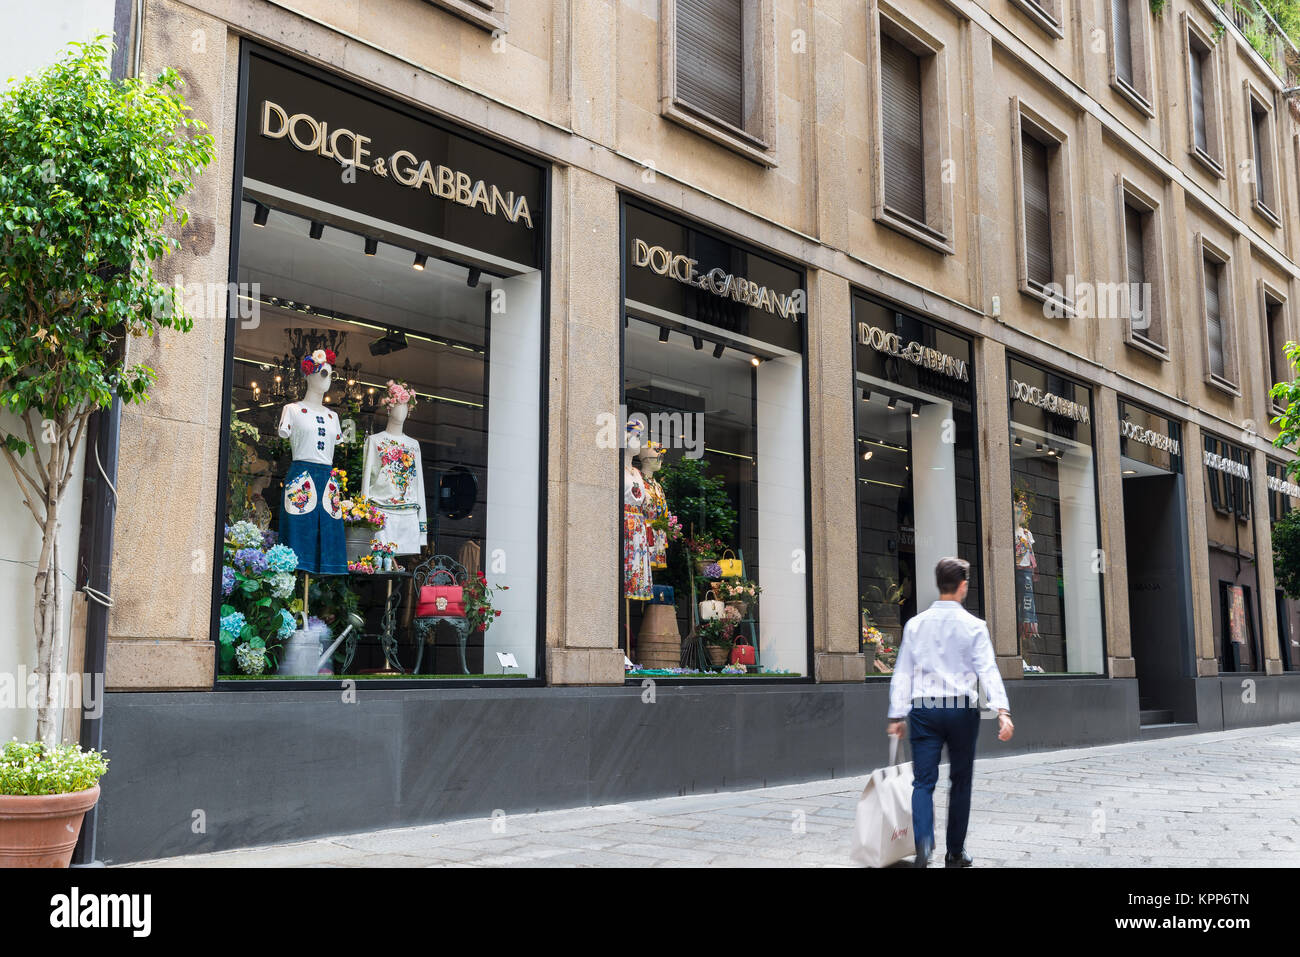 Milan, Italy - August 10, 2017: Dolce & Gabbana shop in a street of the Milan fashion district known as the Quadrilatero Stock Photo